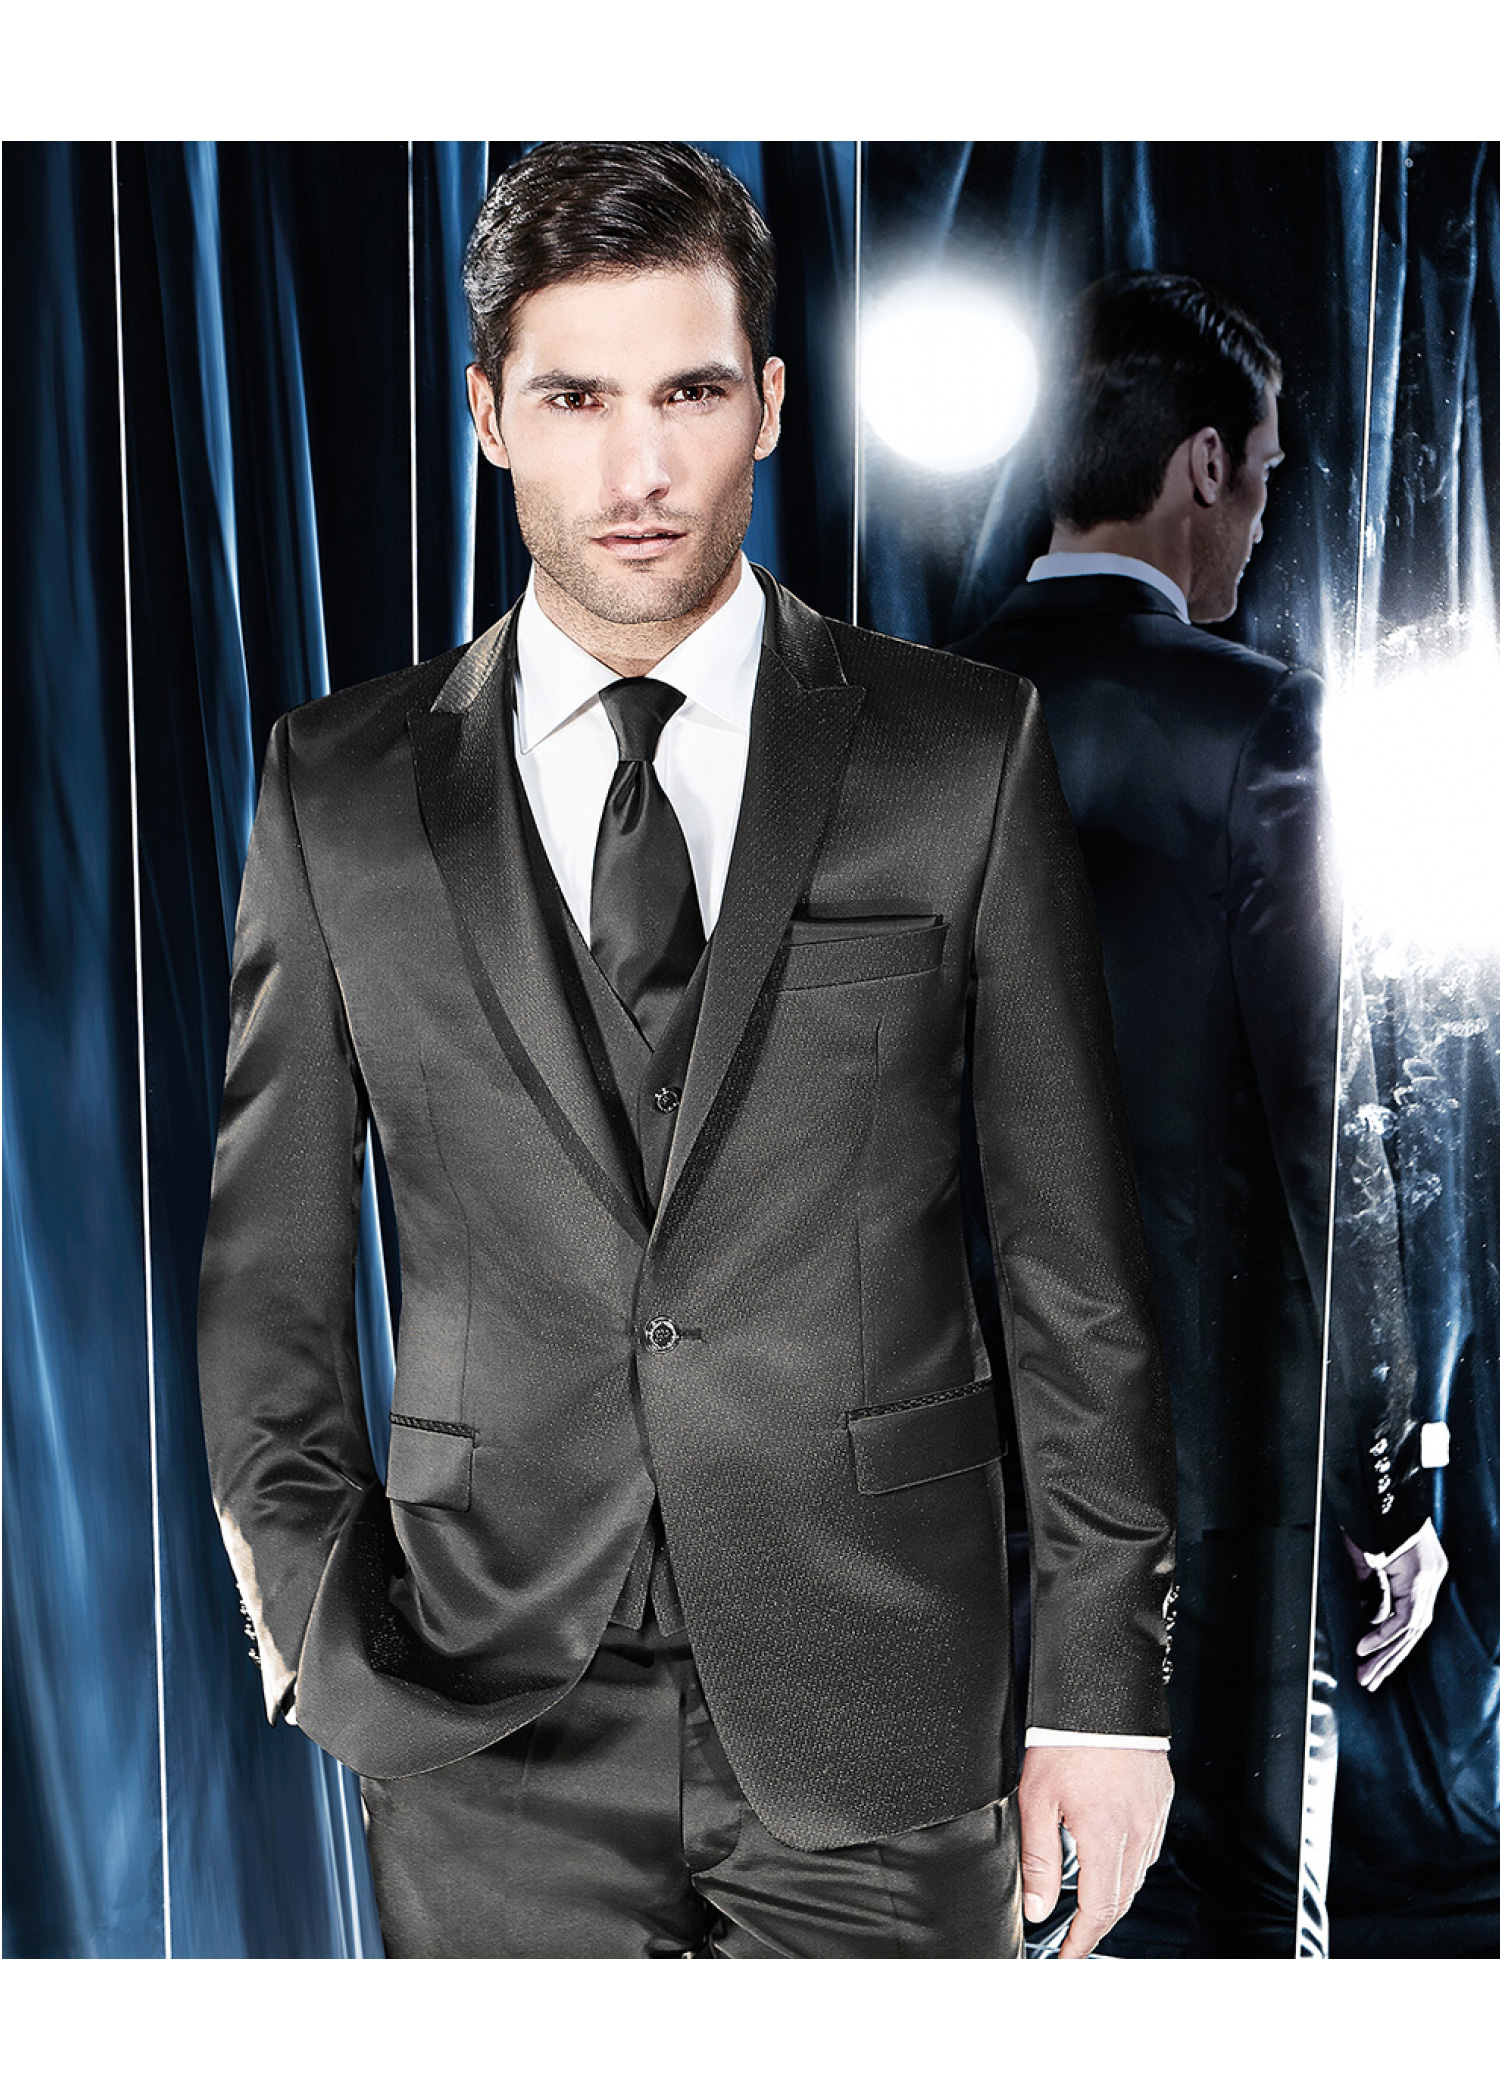 Speckled Brown Glossy Suit - Tom Murphy\'s Formal and Menswear